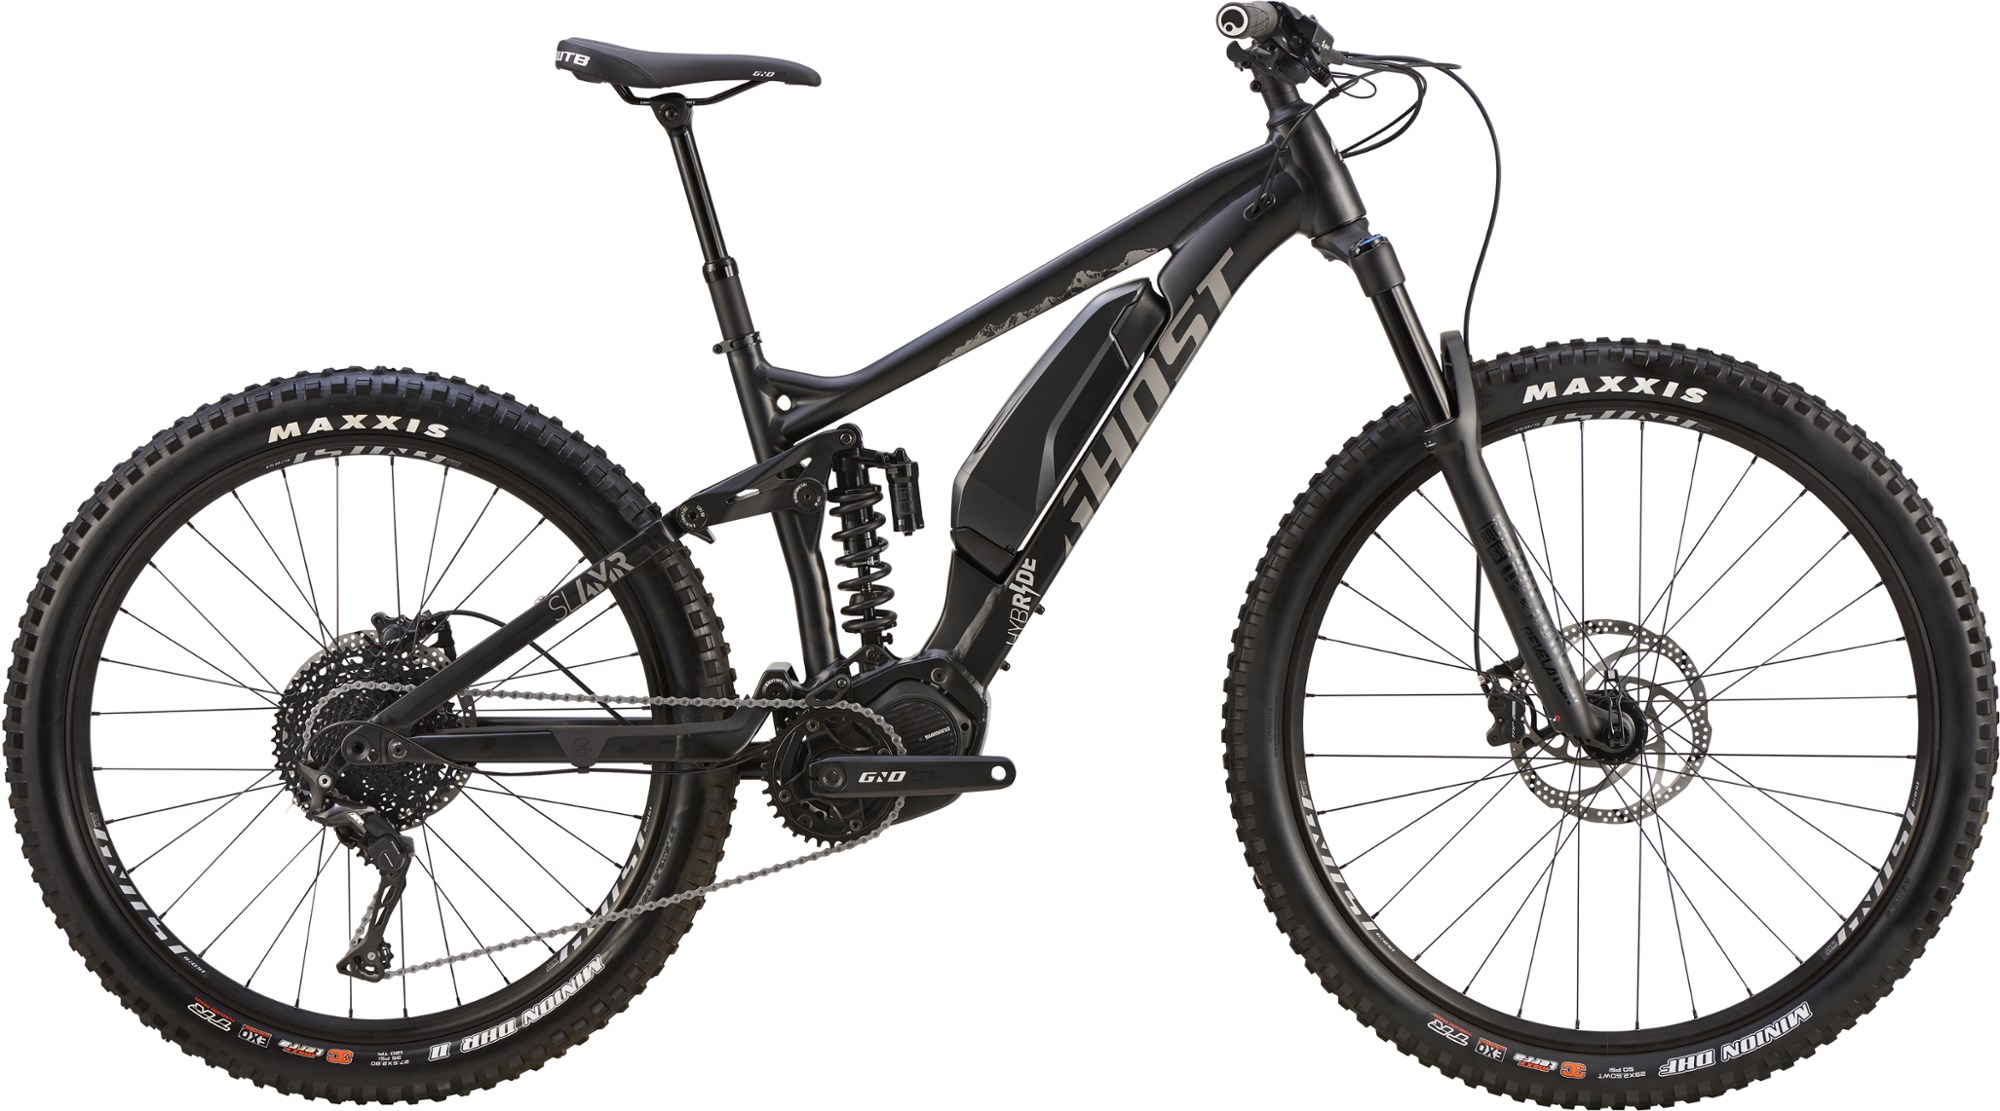 GHOST Hybride SLAMR S1.7+ Electric Mountain Bike - 2019